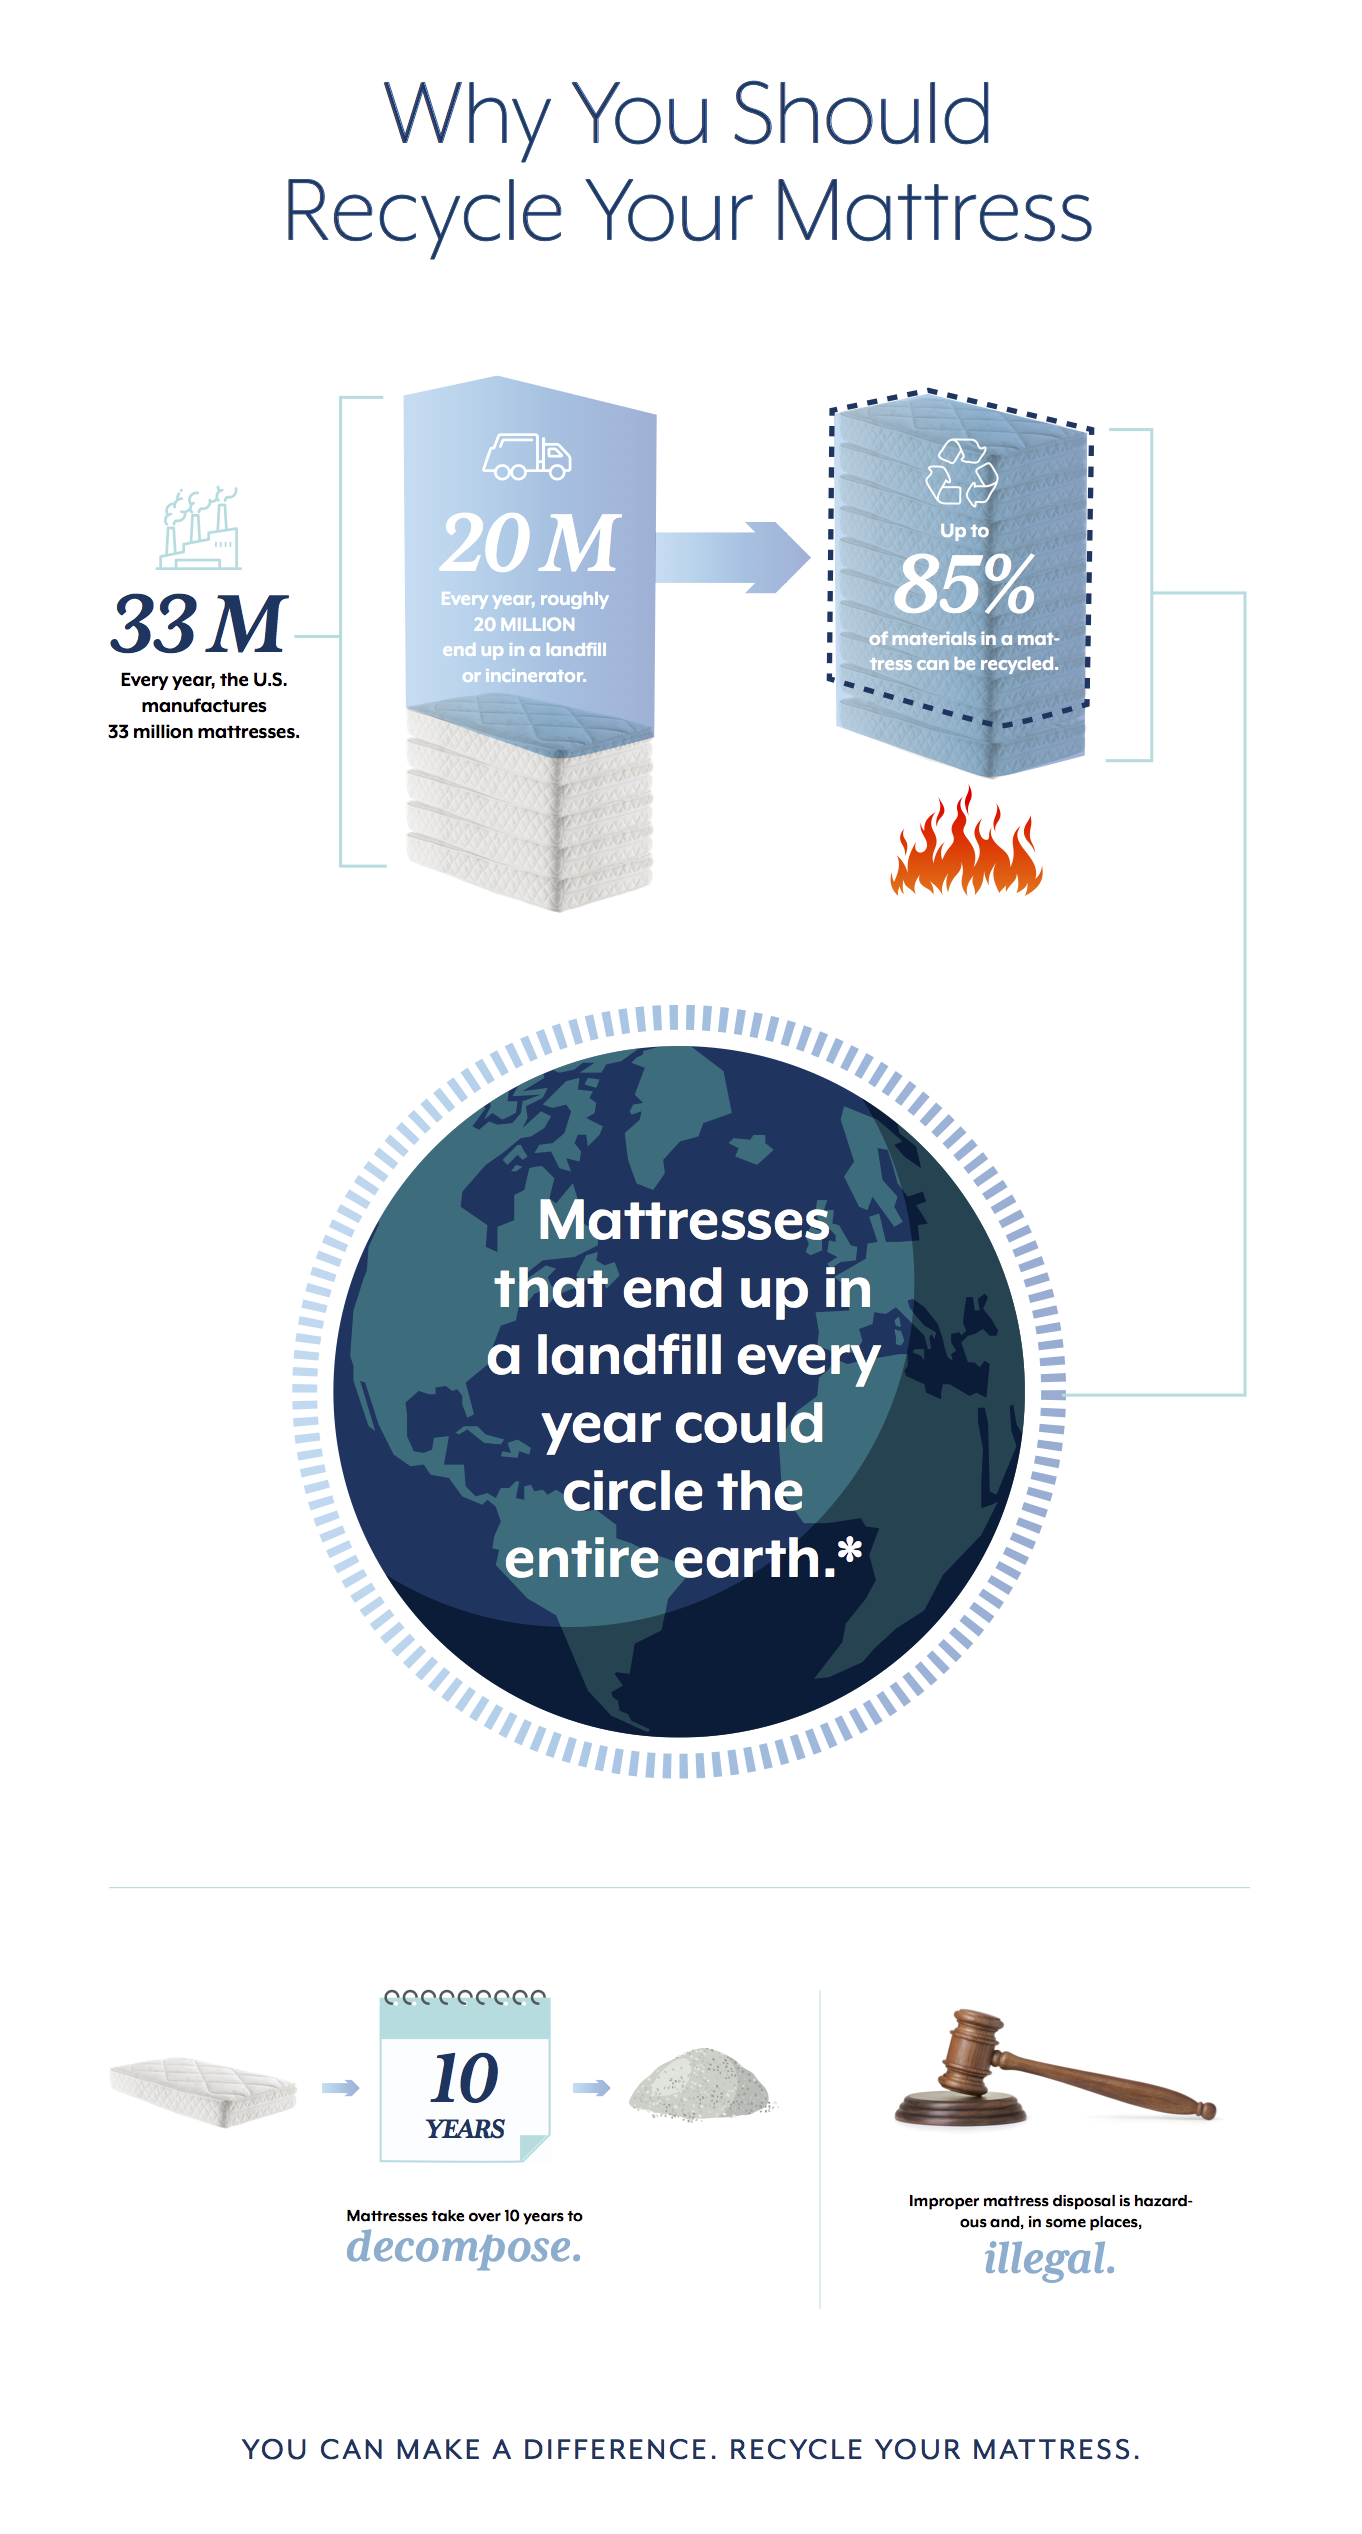 Why You Should Recycle Your Mattress